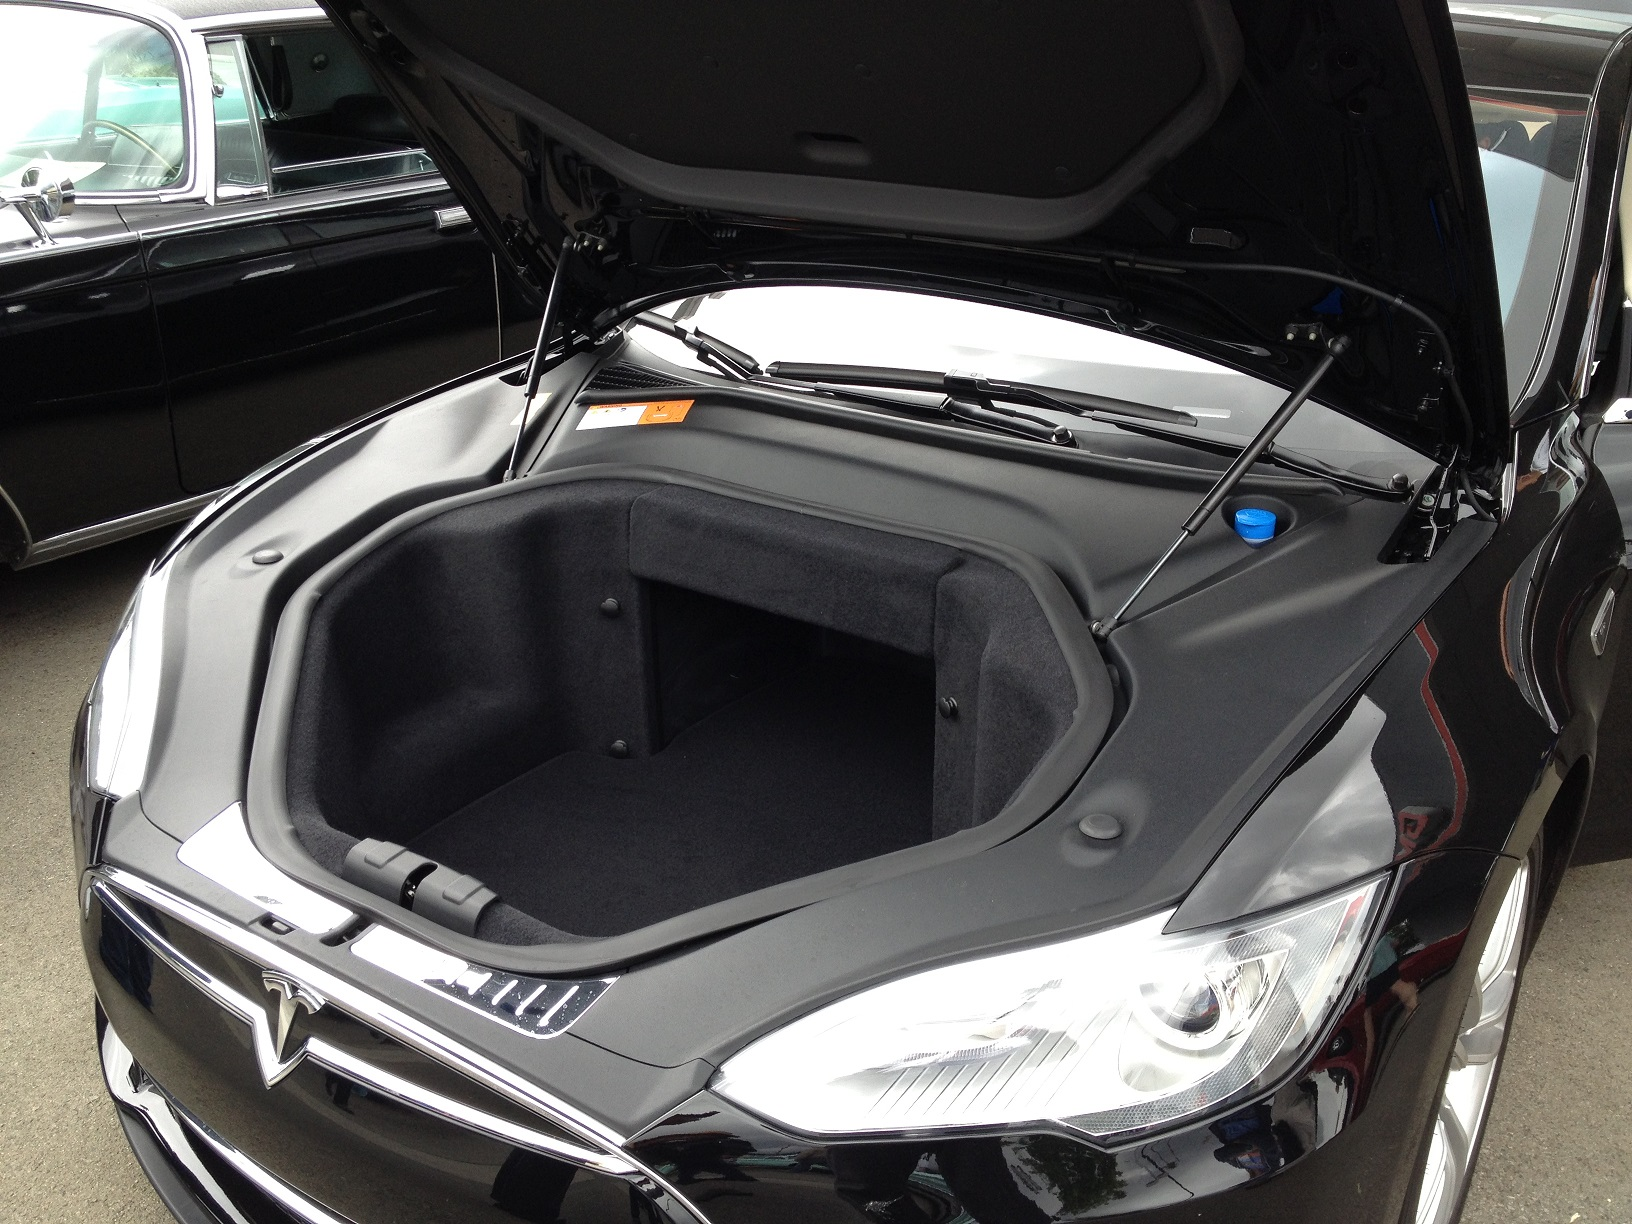 https://acarisnotarefrigerator.files.wordpress.com/2013/06/tesla-model-s-front-boot.jpg